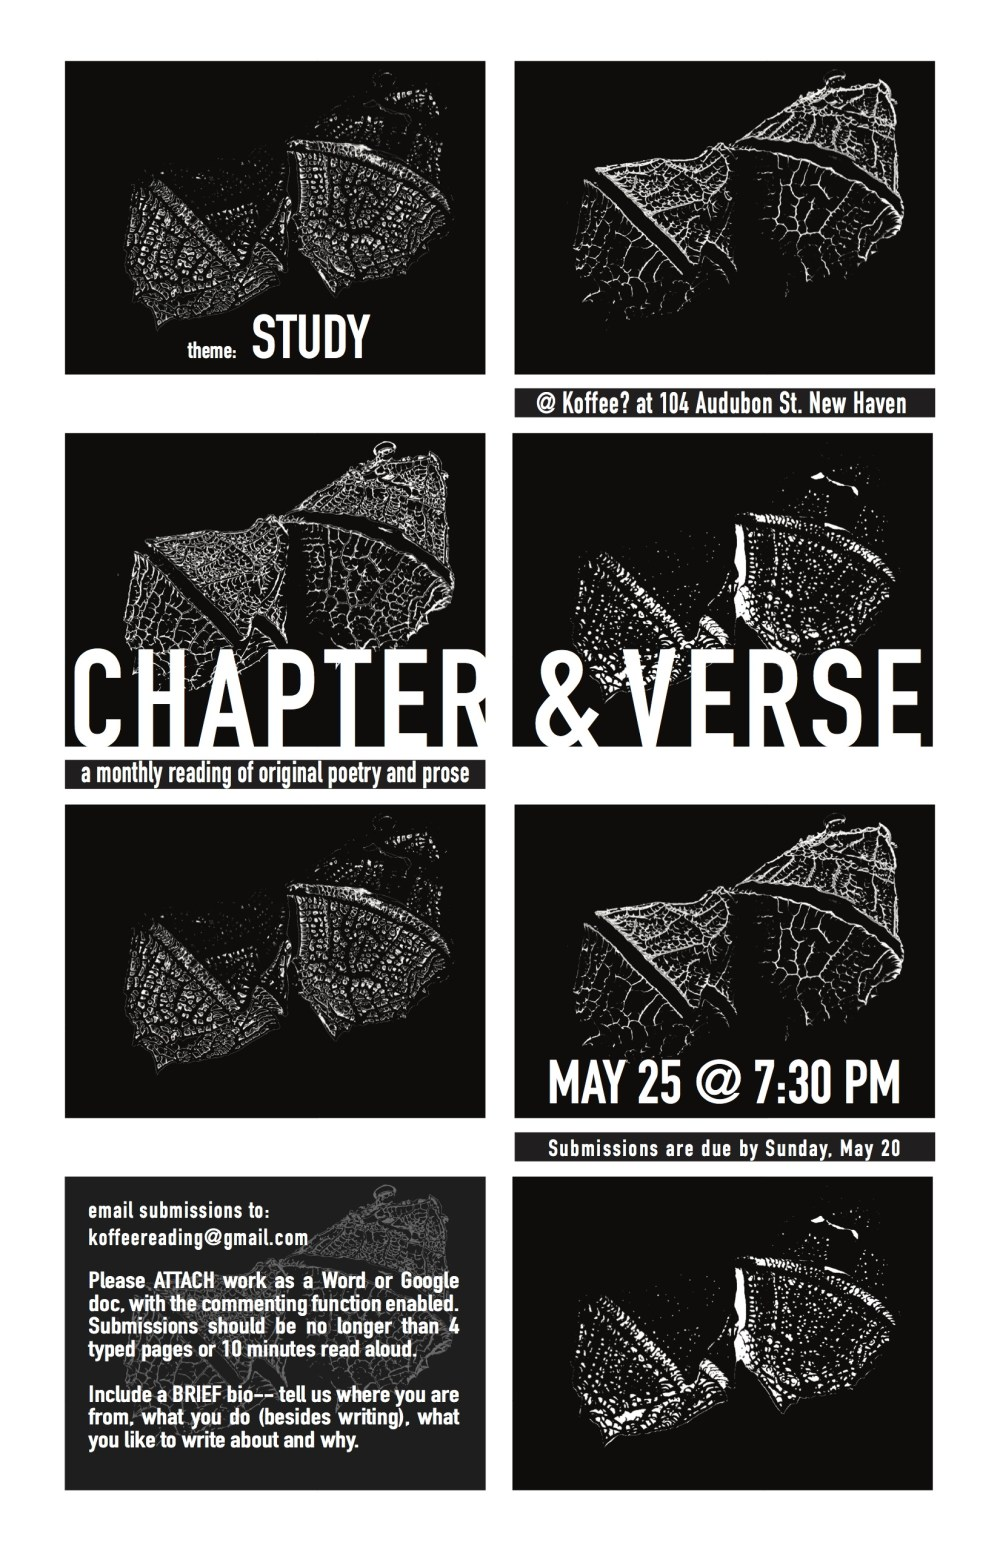 medium resolution of chapter verse poster by carolyn stockage